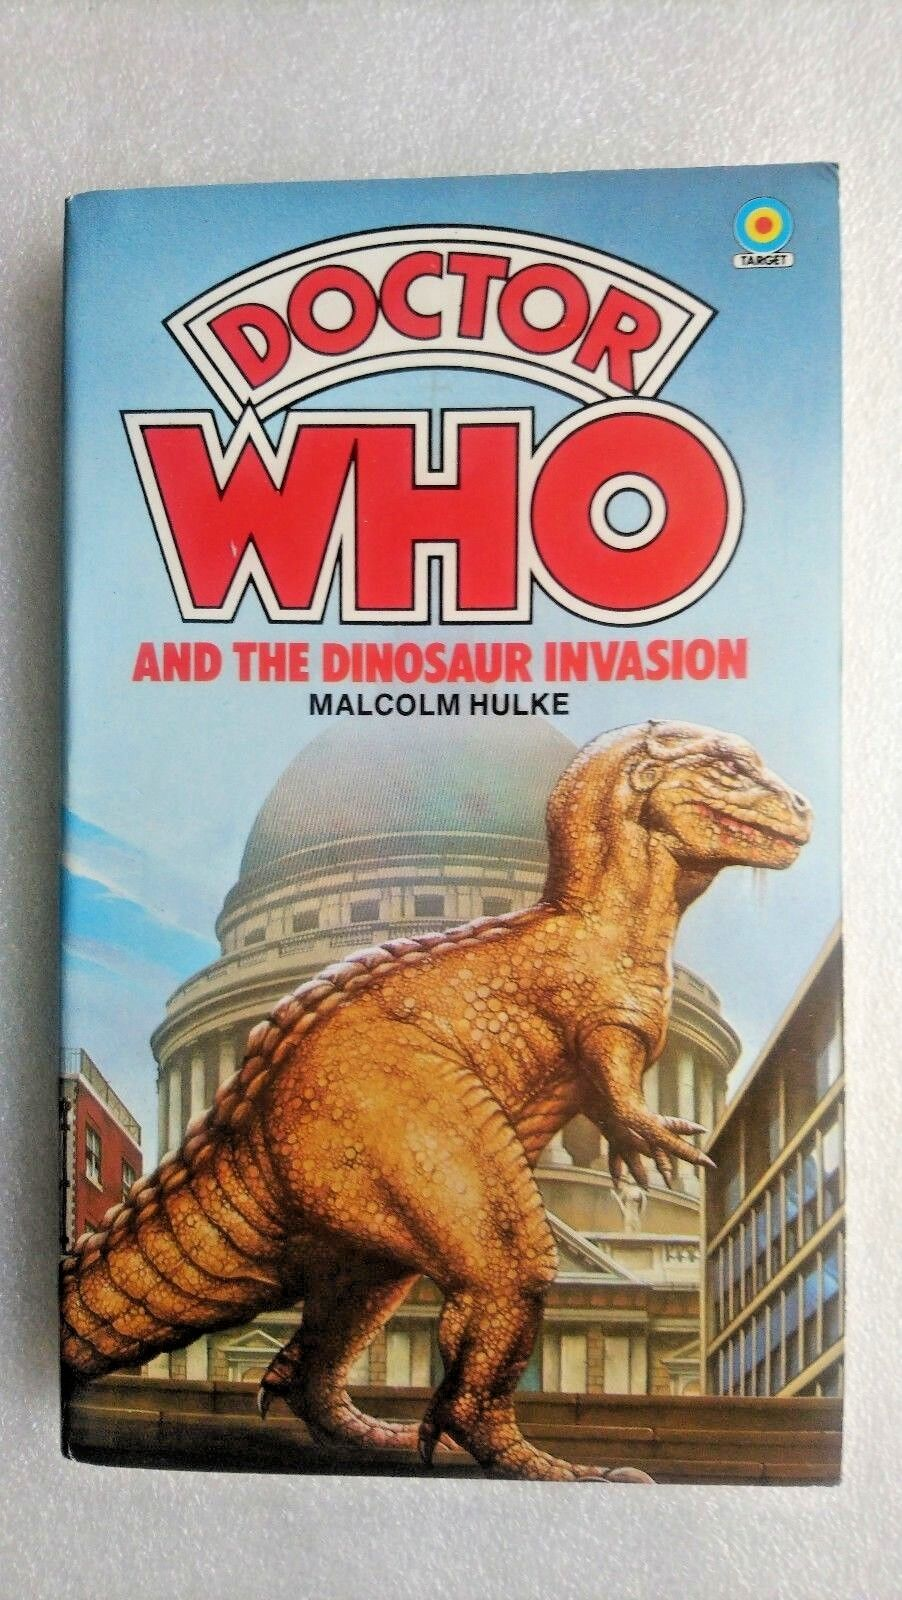 Doctor Who and the Dinosaur Invasion by Malcolm Hulke (Paperback, 1984)